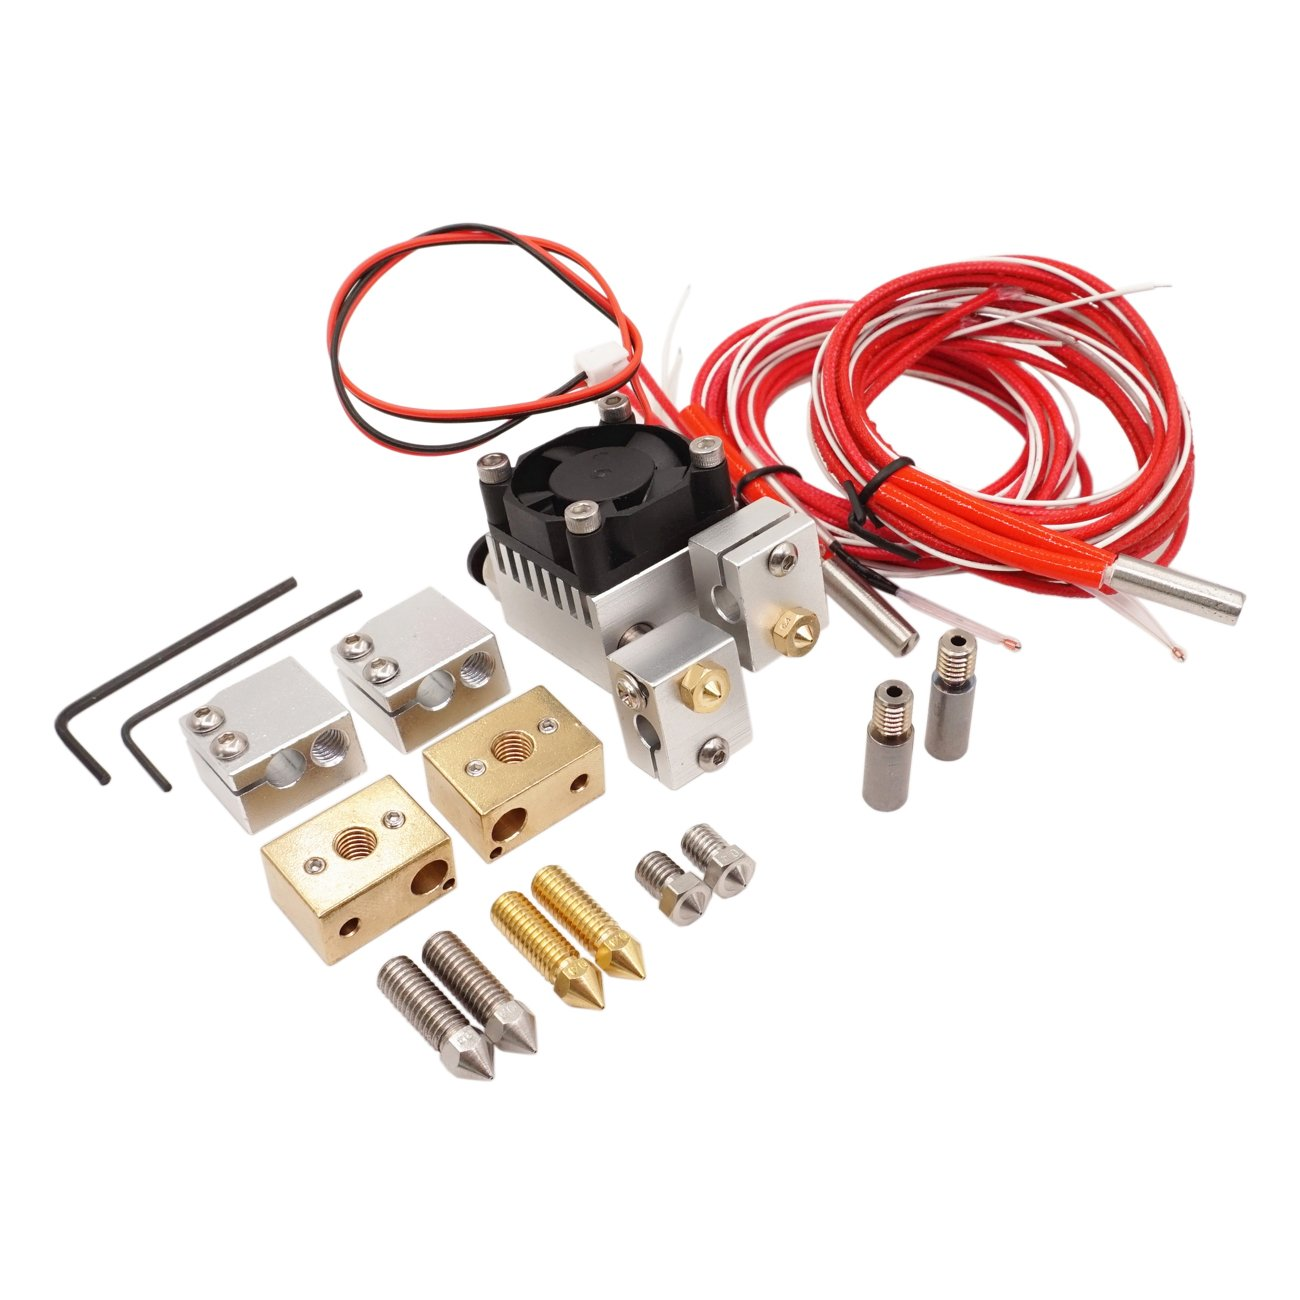 WINSINN Chimera Hotend Extruder Full Kit - High Speed Volcano Upgrade + Sensor Copper heater block 0.4mm Copper & Stainless steel Nozzle For PT100 1.75mm Filament WINSINN Technology Ltd